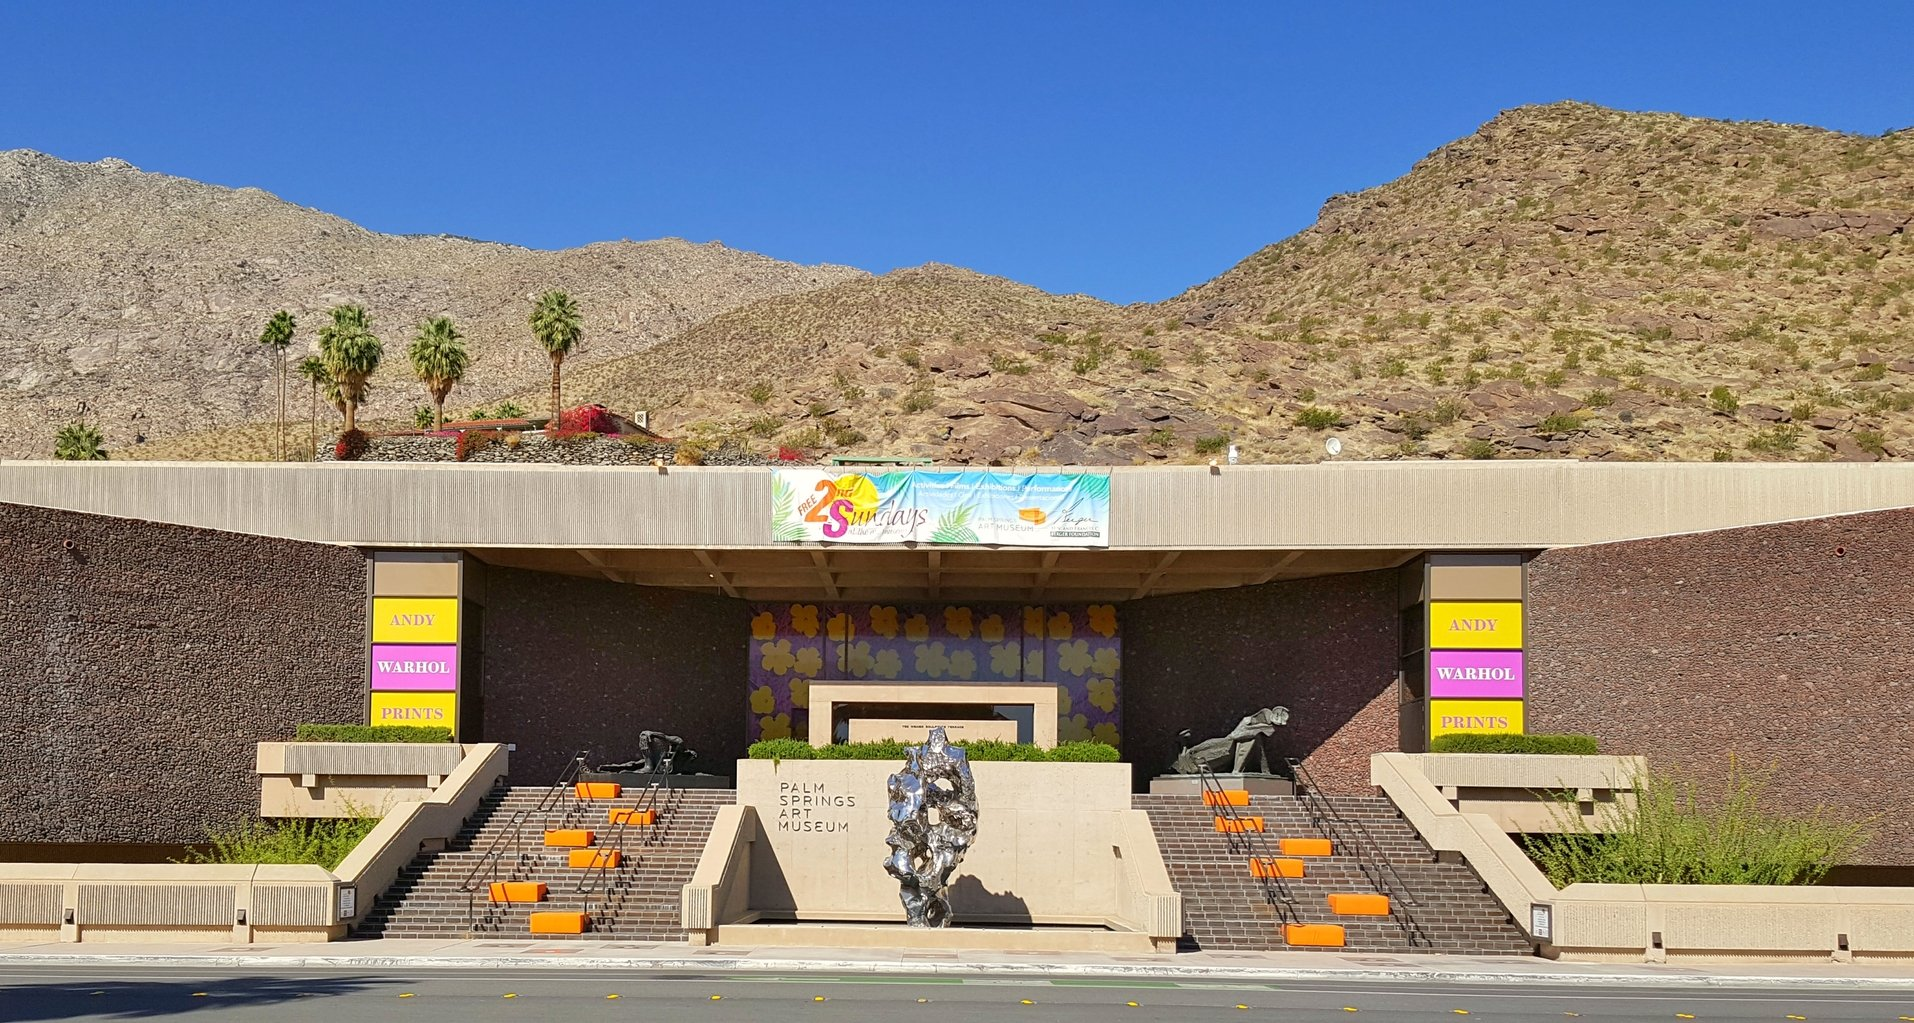 The one-story exterior of the museum with mountains and palm trees in the background.